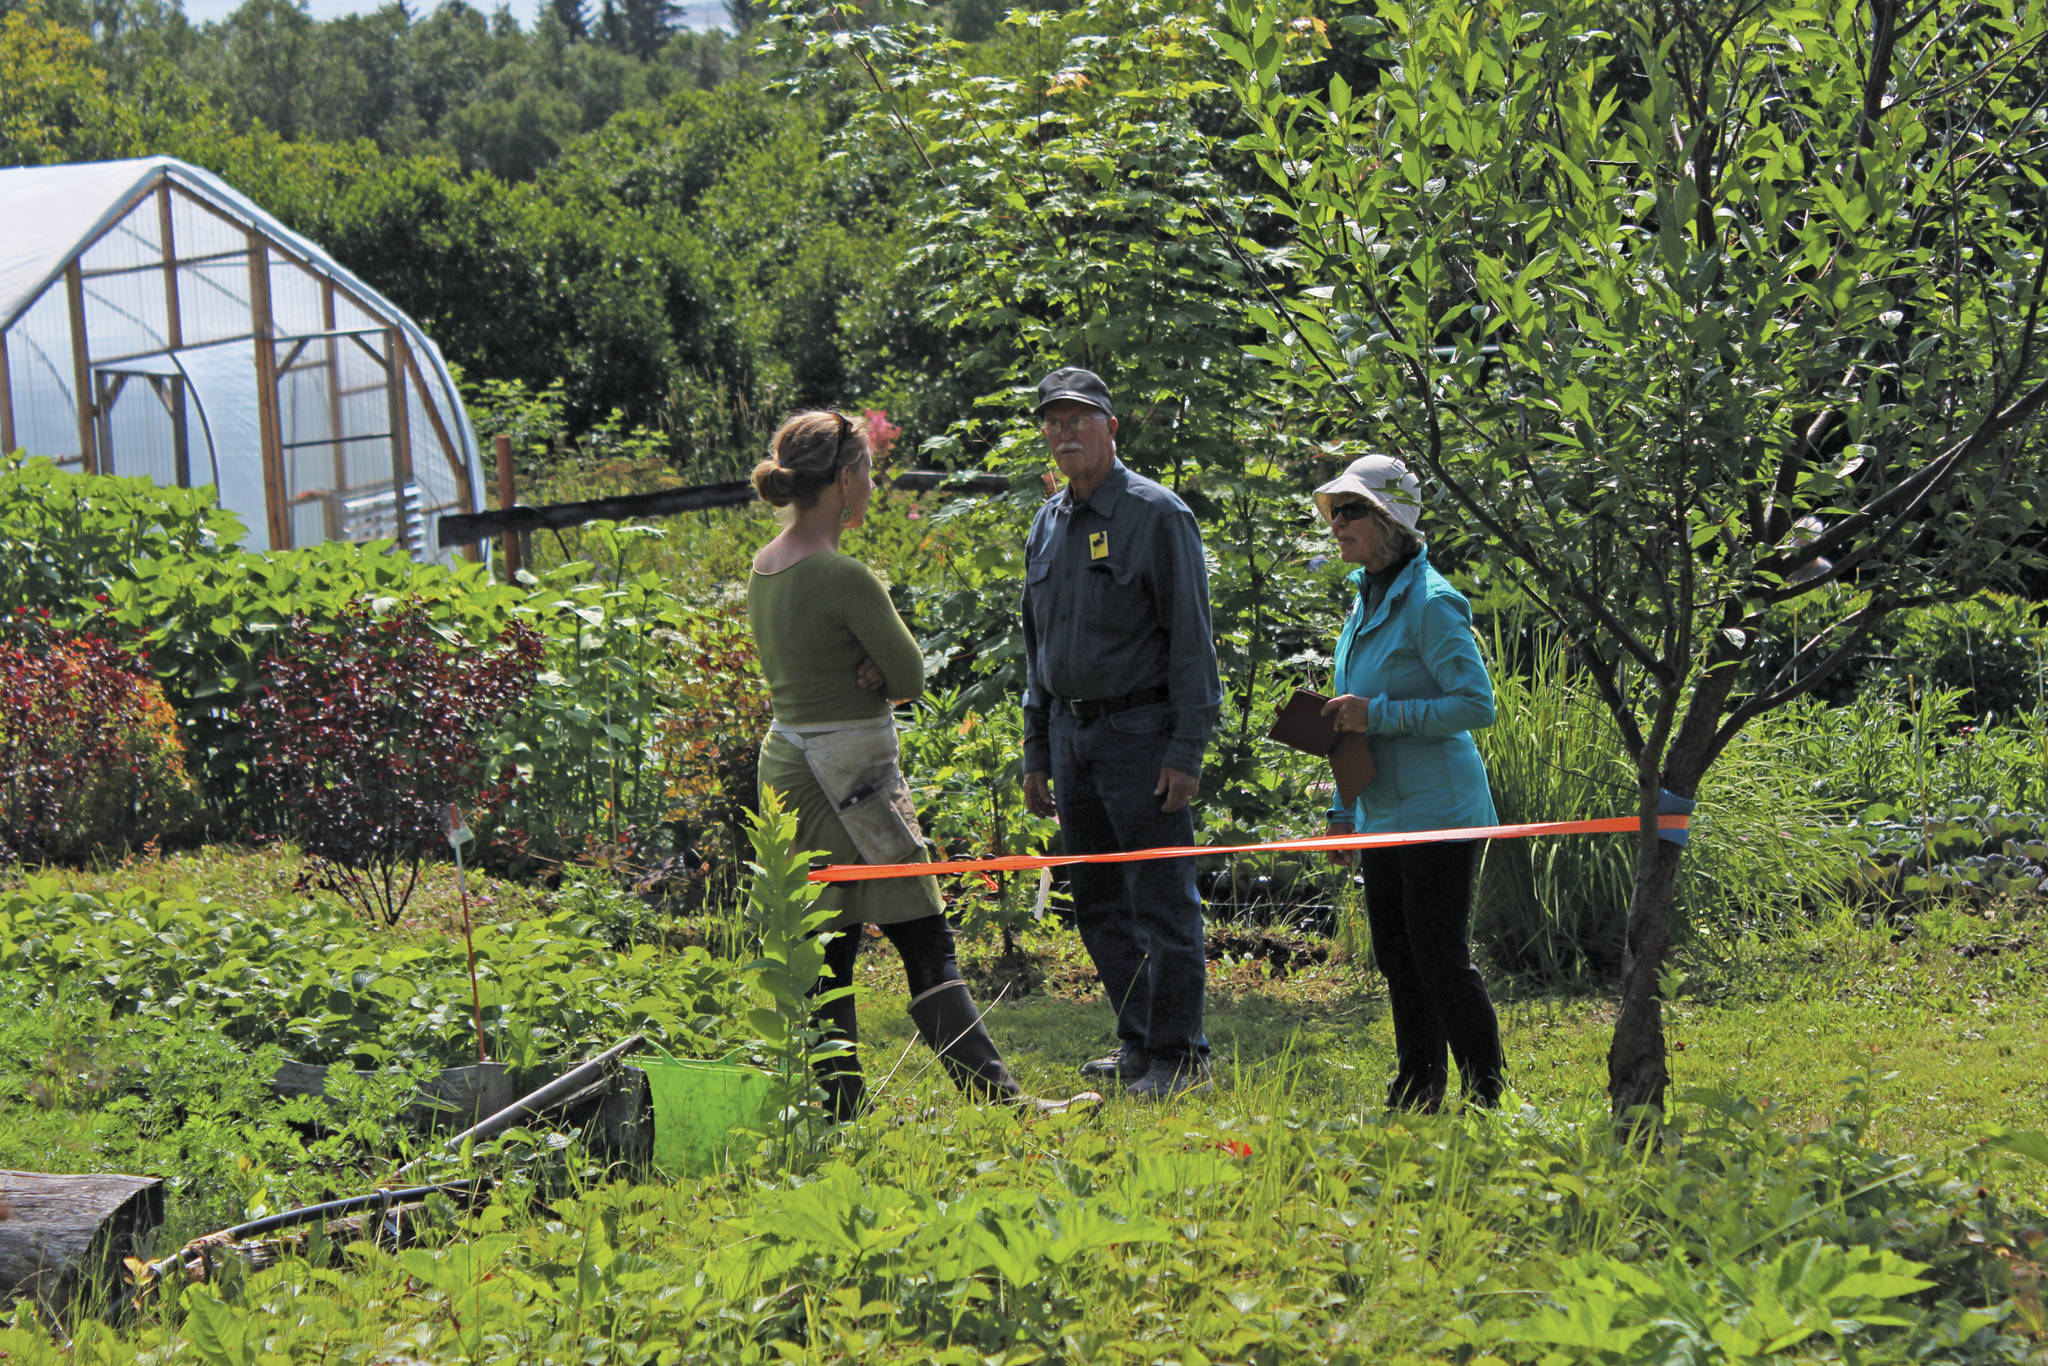 Visitors ask questions of Rachel Lord, who owns Alaska Stems, during this year's Garden Tour on Sunday, July 28, 2019 at her garden in Homer, Alaska. (Photo by Megan Pacer/Homer News)